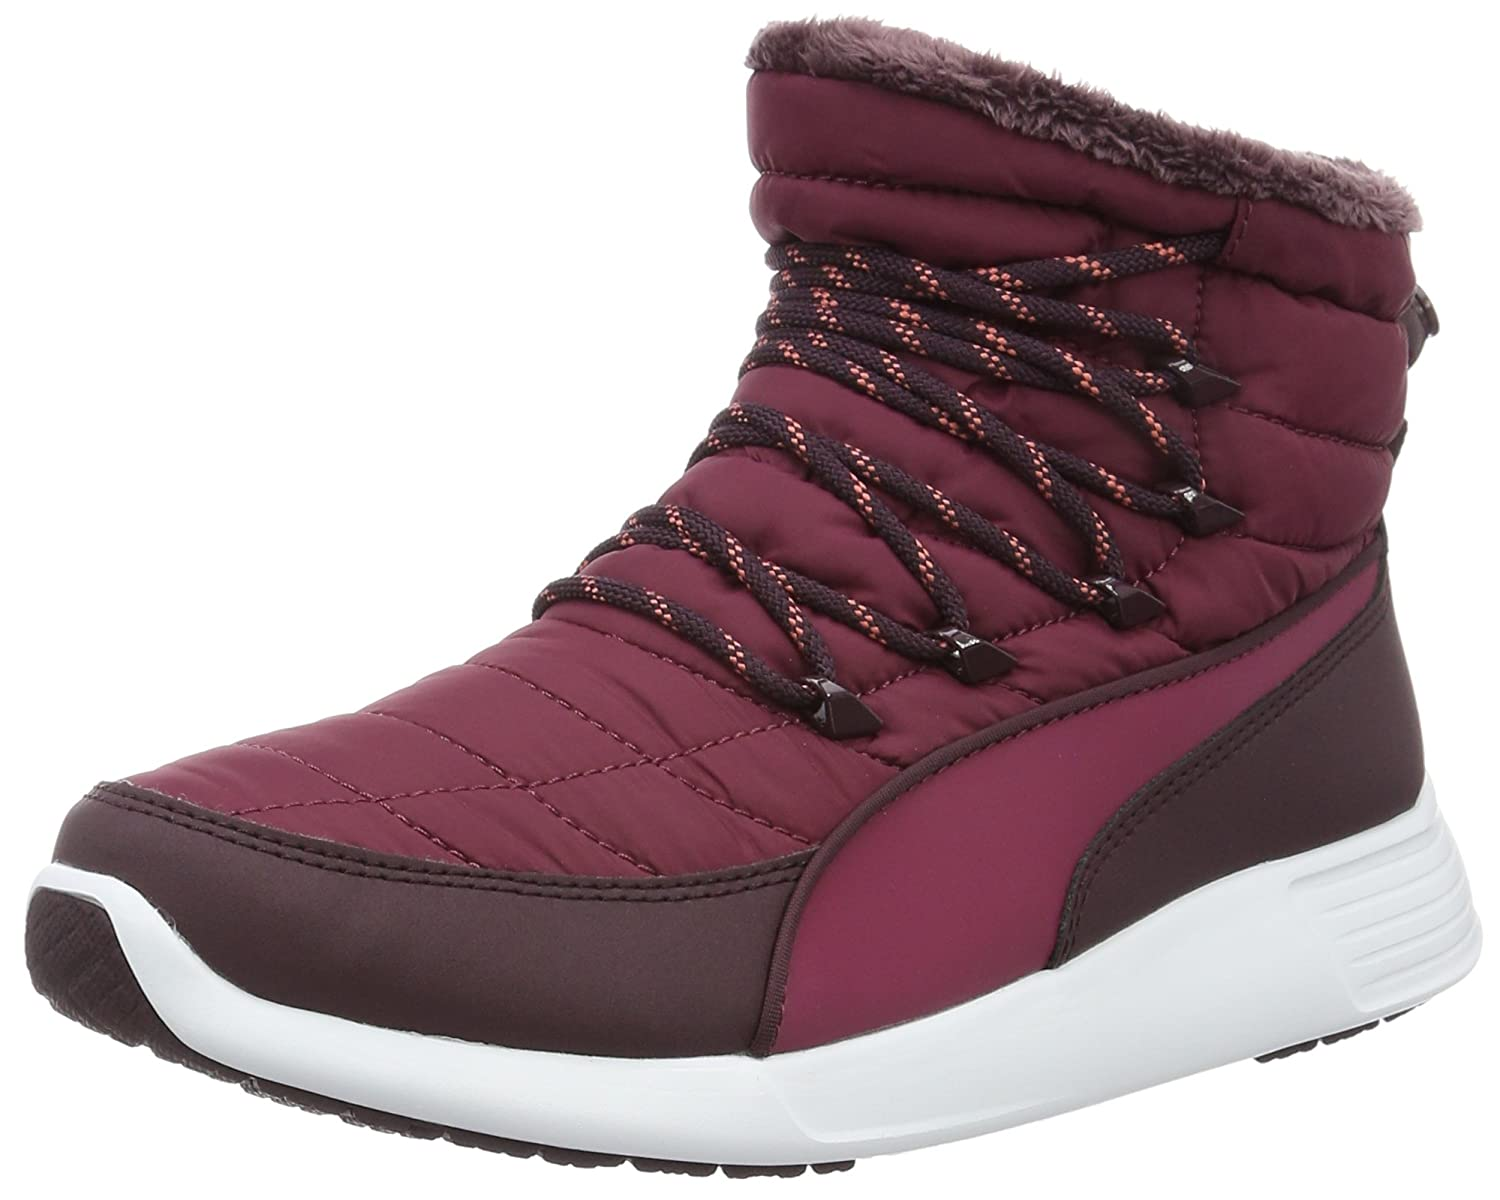 Puma Damen St Winter Boot Schneestiefel  38.5 EU|Rot (Red Plum-red Plum 02)